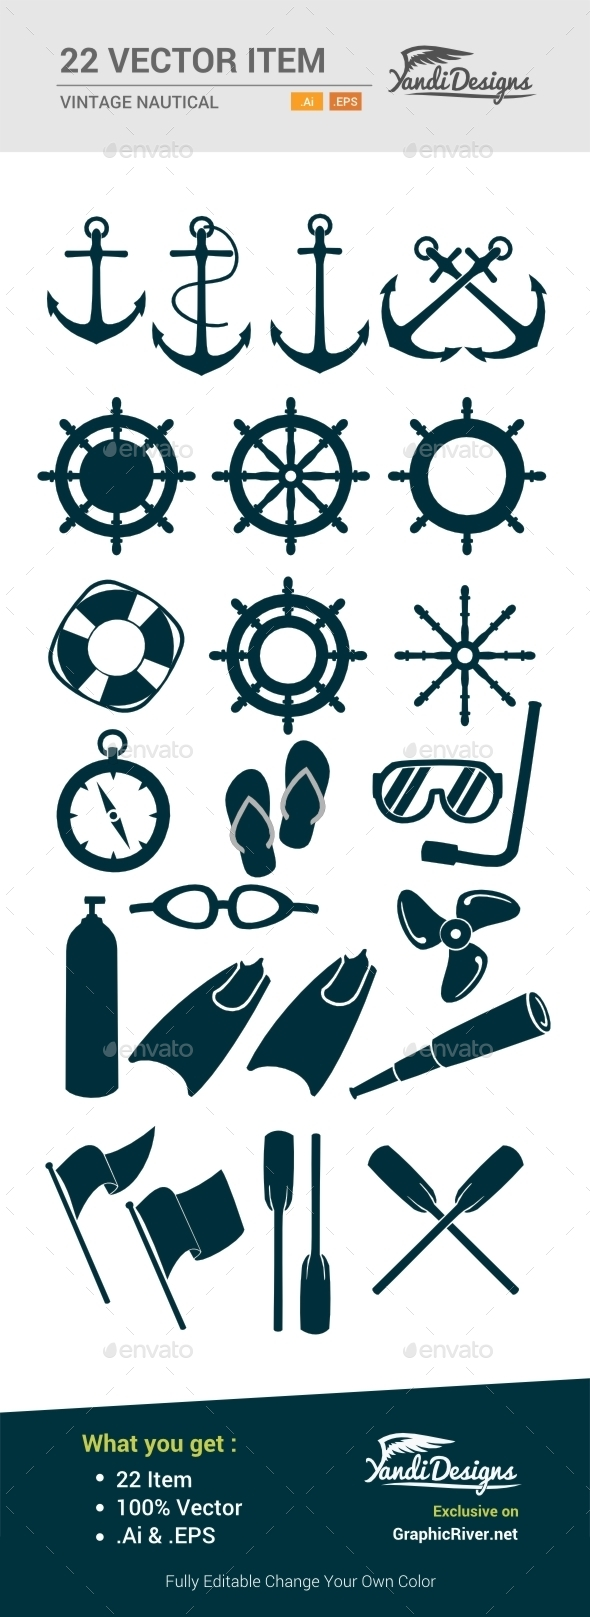 GraphicRiver Vintage Nautical Item 10656680